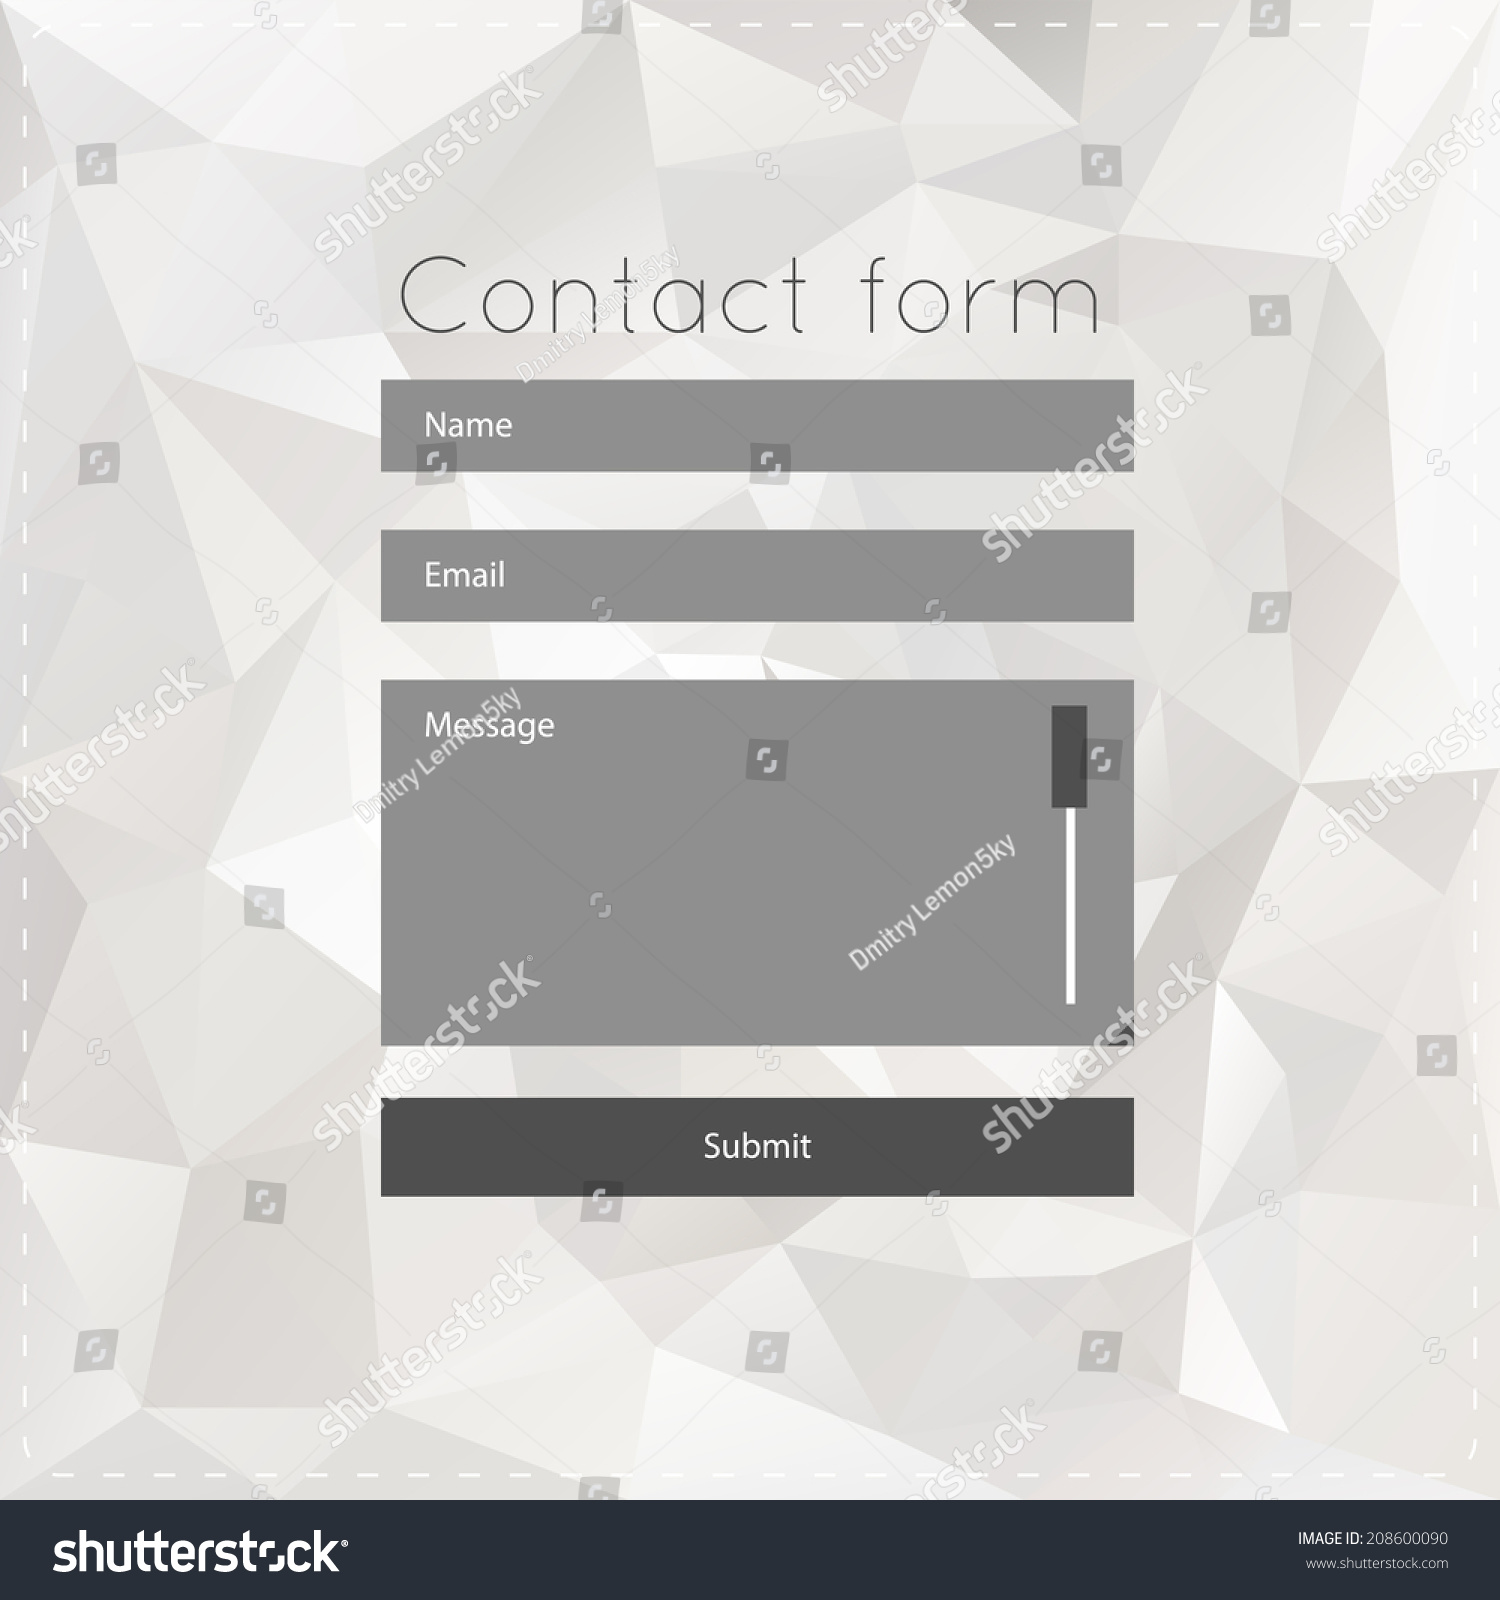 Simple Contact Us Form Templates Vector Stock Vector (Royalty Free ...